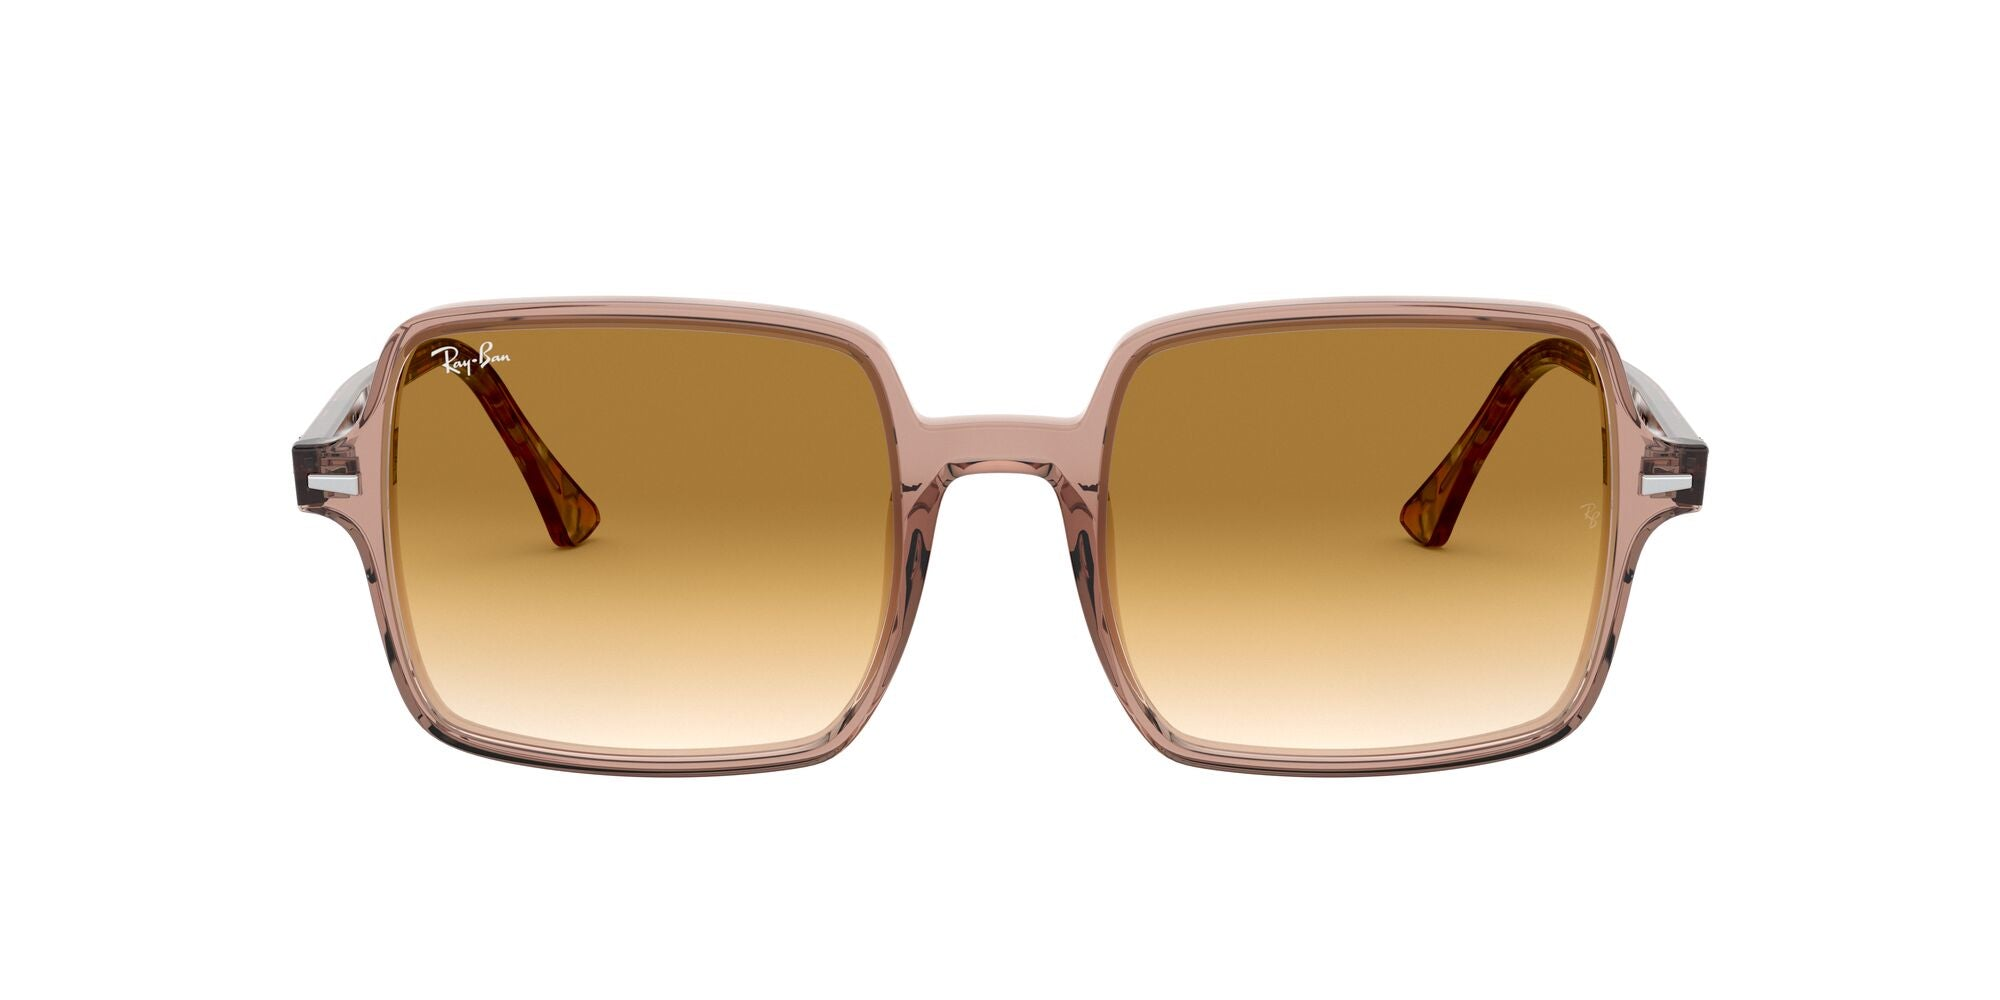 TRANSPARENT LIGHT BROWN